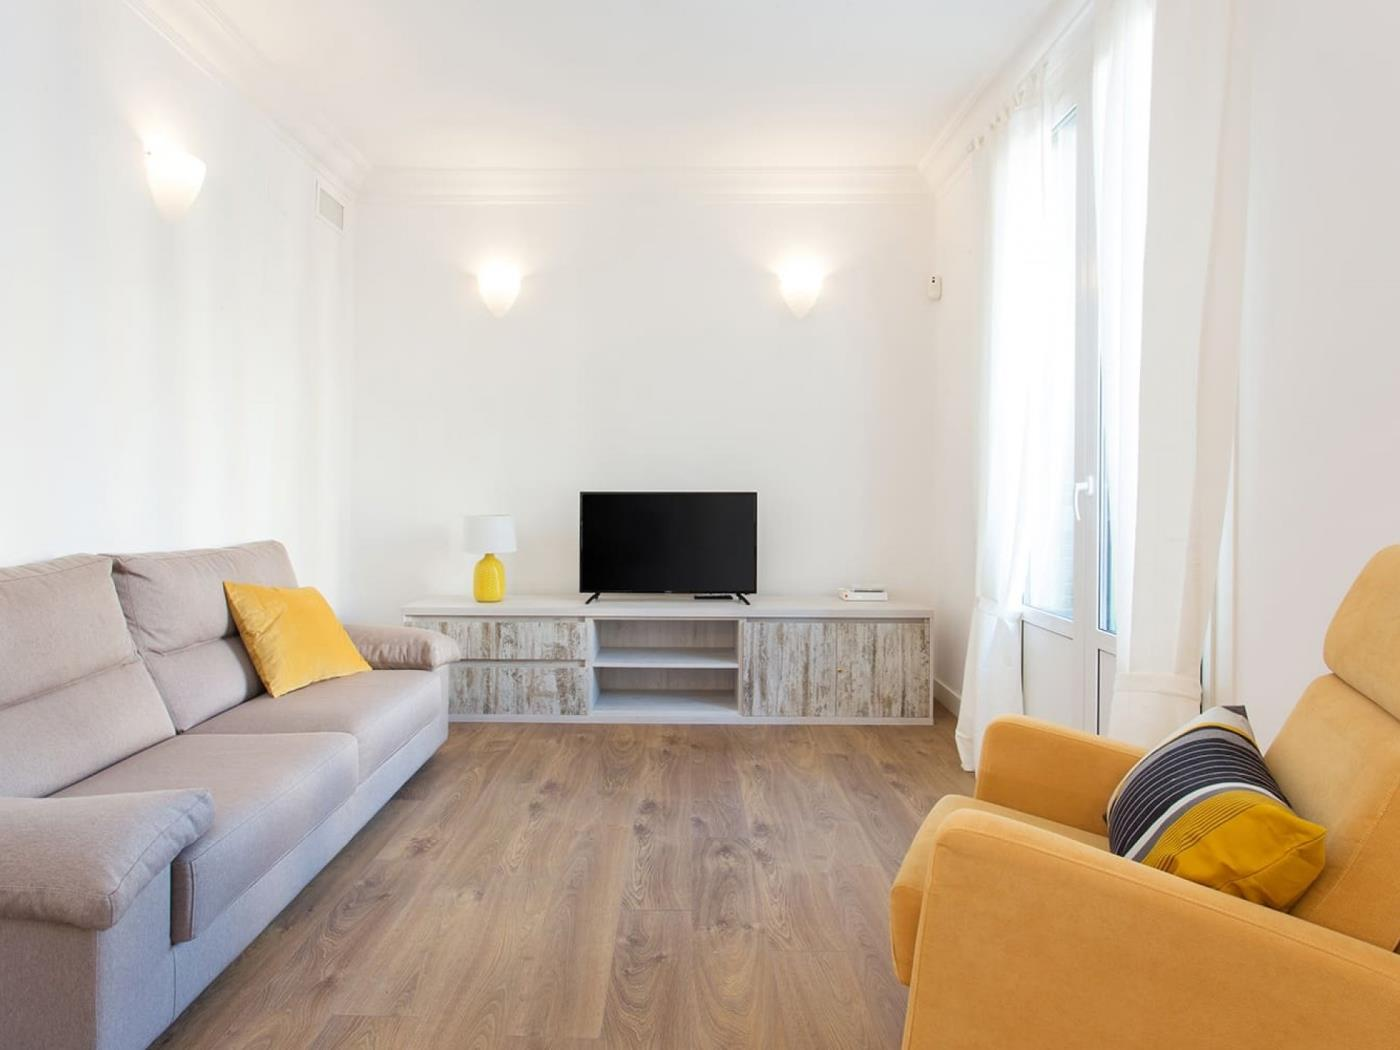 Modern bright apartment in the centre for monthly rentals for 5 - My Space Barcelona Apartments